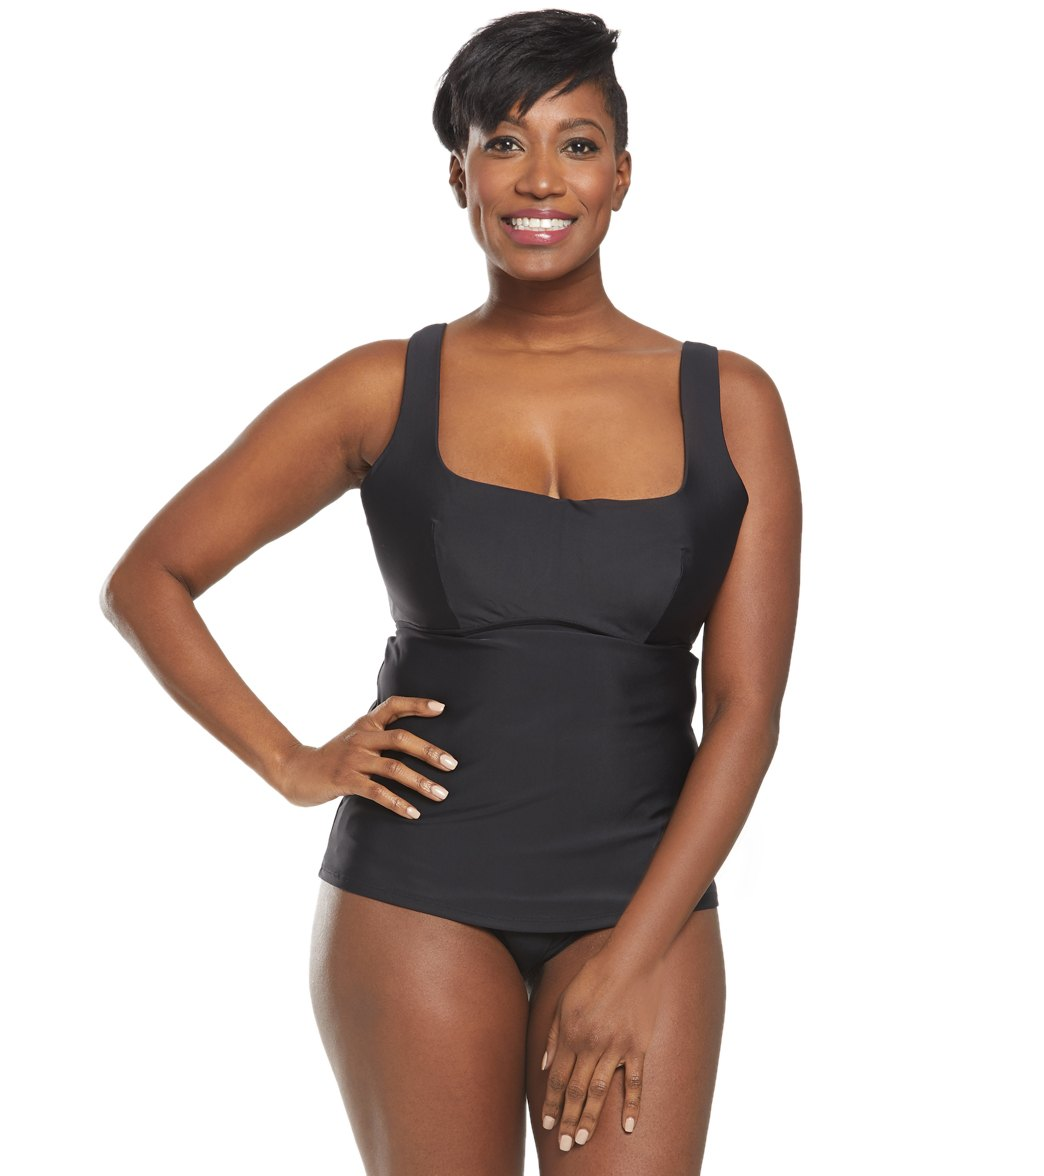 ba822b6424 Lole Argentina Tankini Top (D Cup) at SwimOutlet.com - Free Shipping